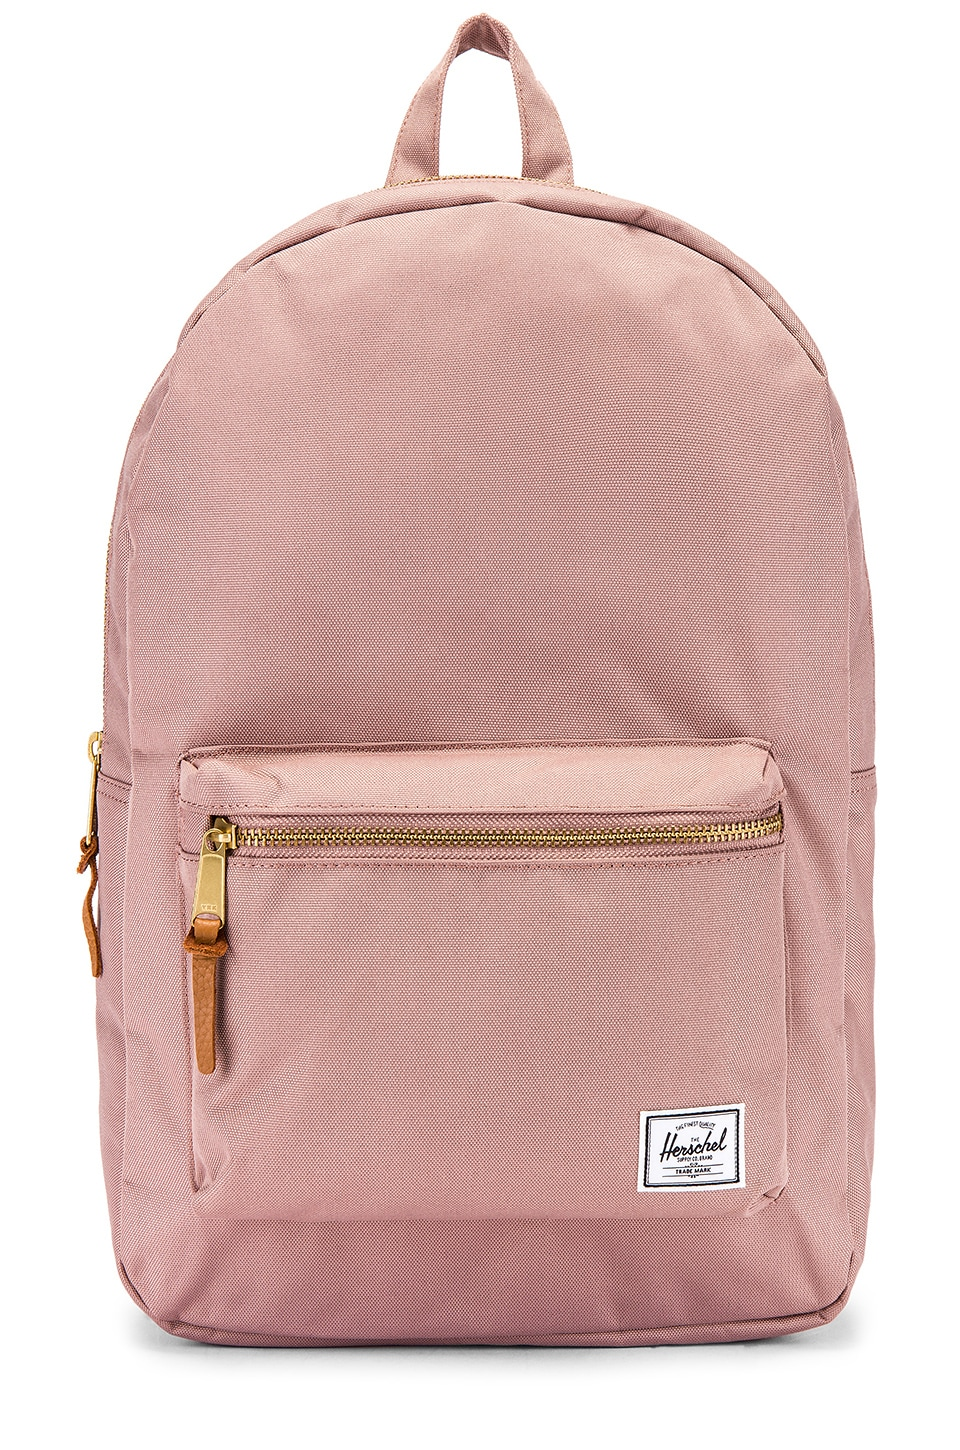 Herschel Supply Co. Settlement Backpack in Ash Rose